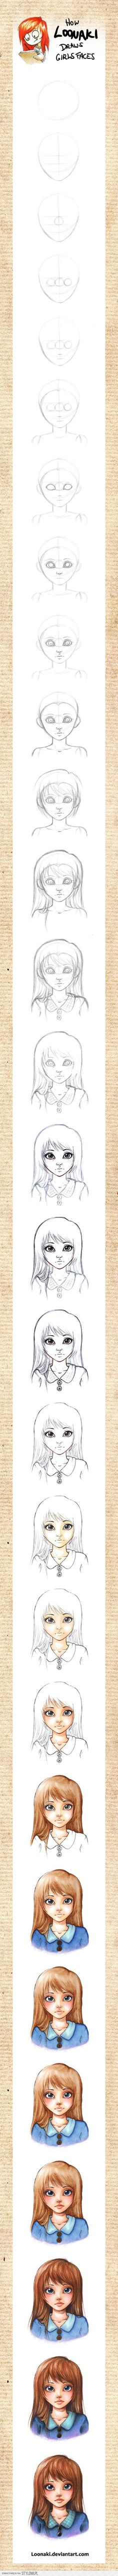 How to draw a girl's face.